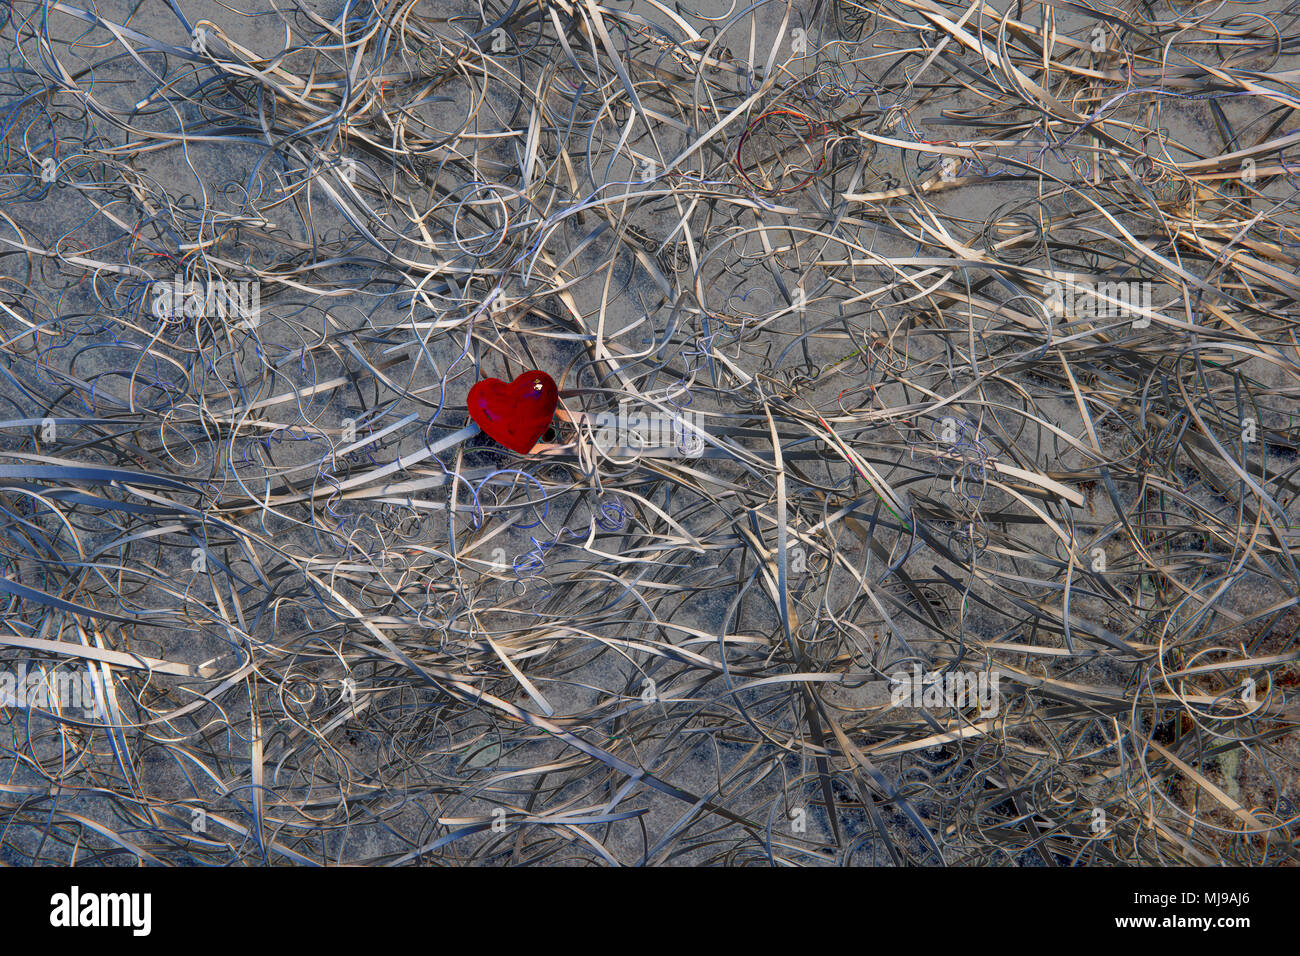 A red glass heart at the centre of a tangle of card offcuts on a background of slate. False colour has turned the white card metallic. - Stock Image